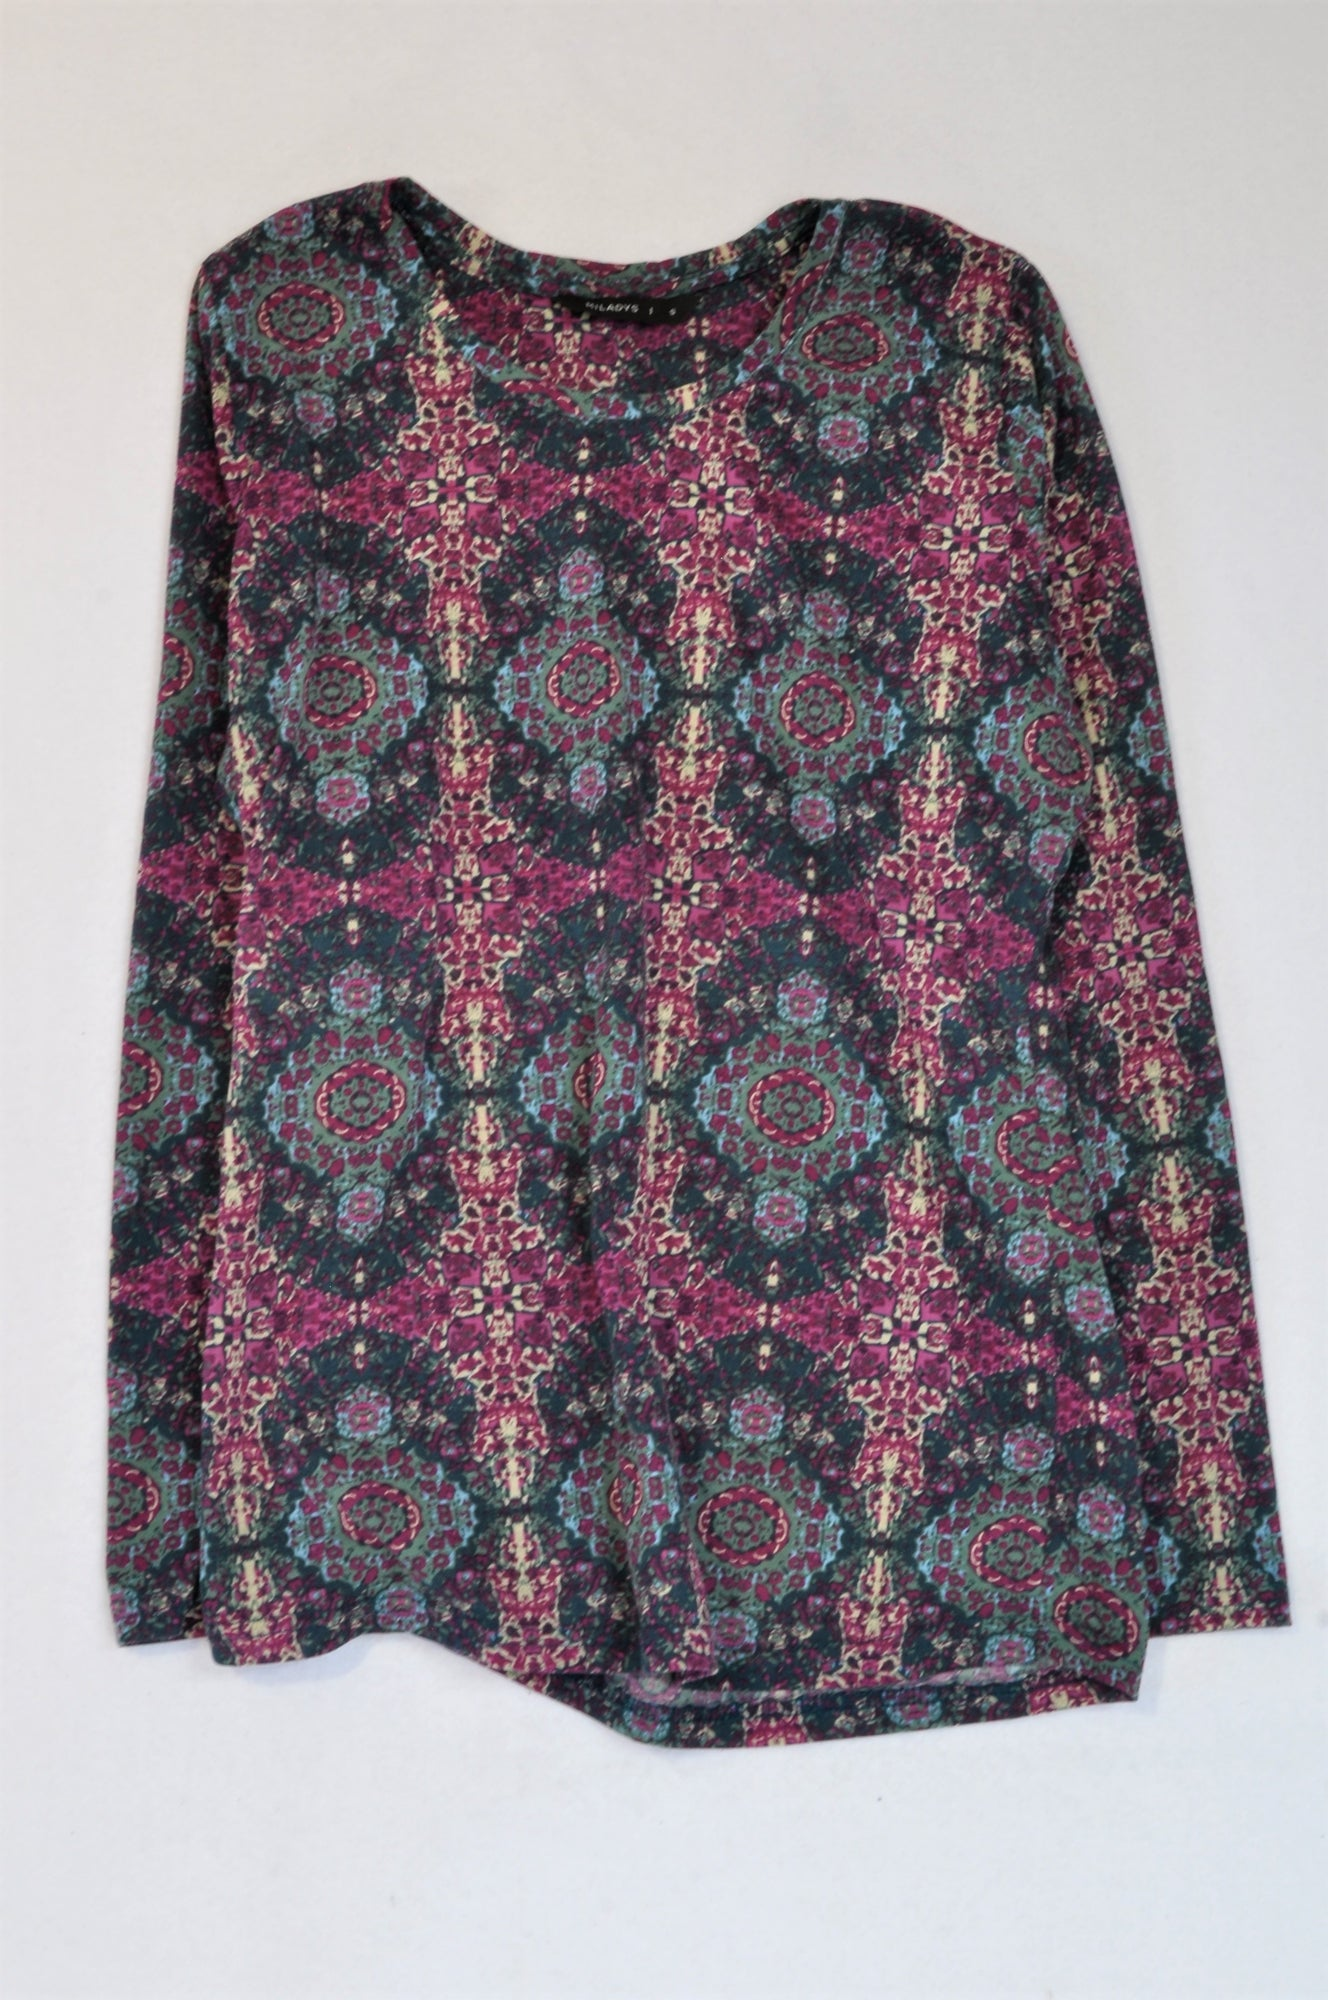 Miladys Purple & Teal Paisley Top Women Size S